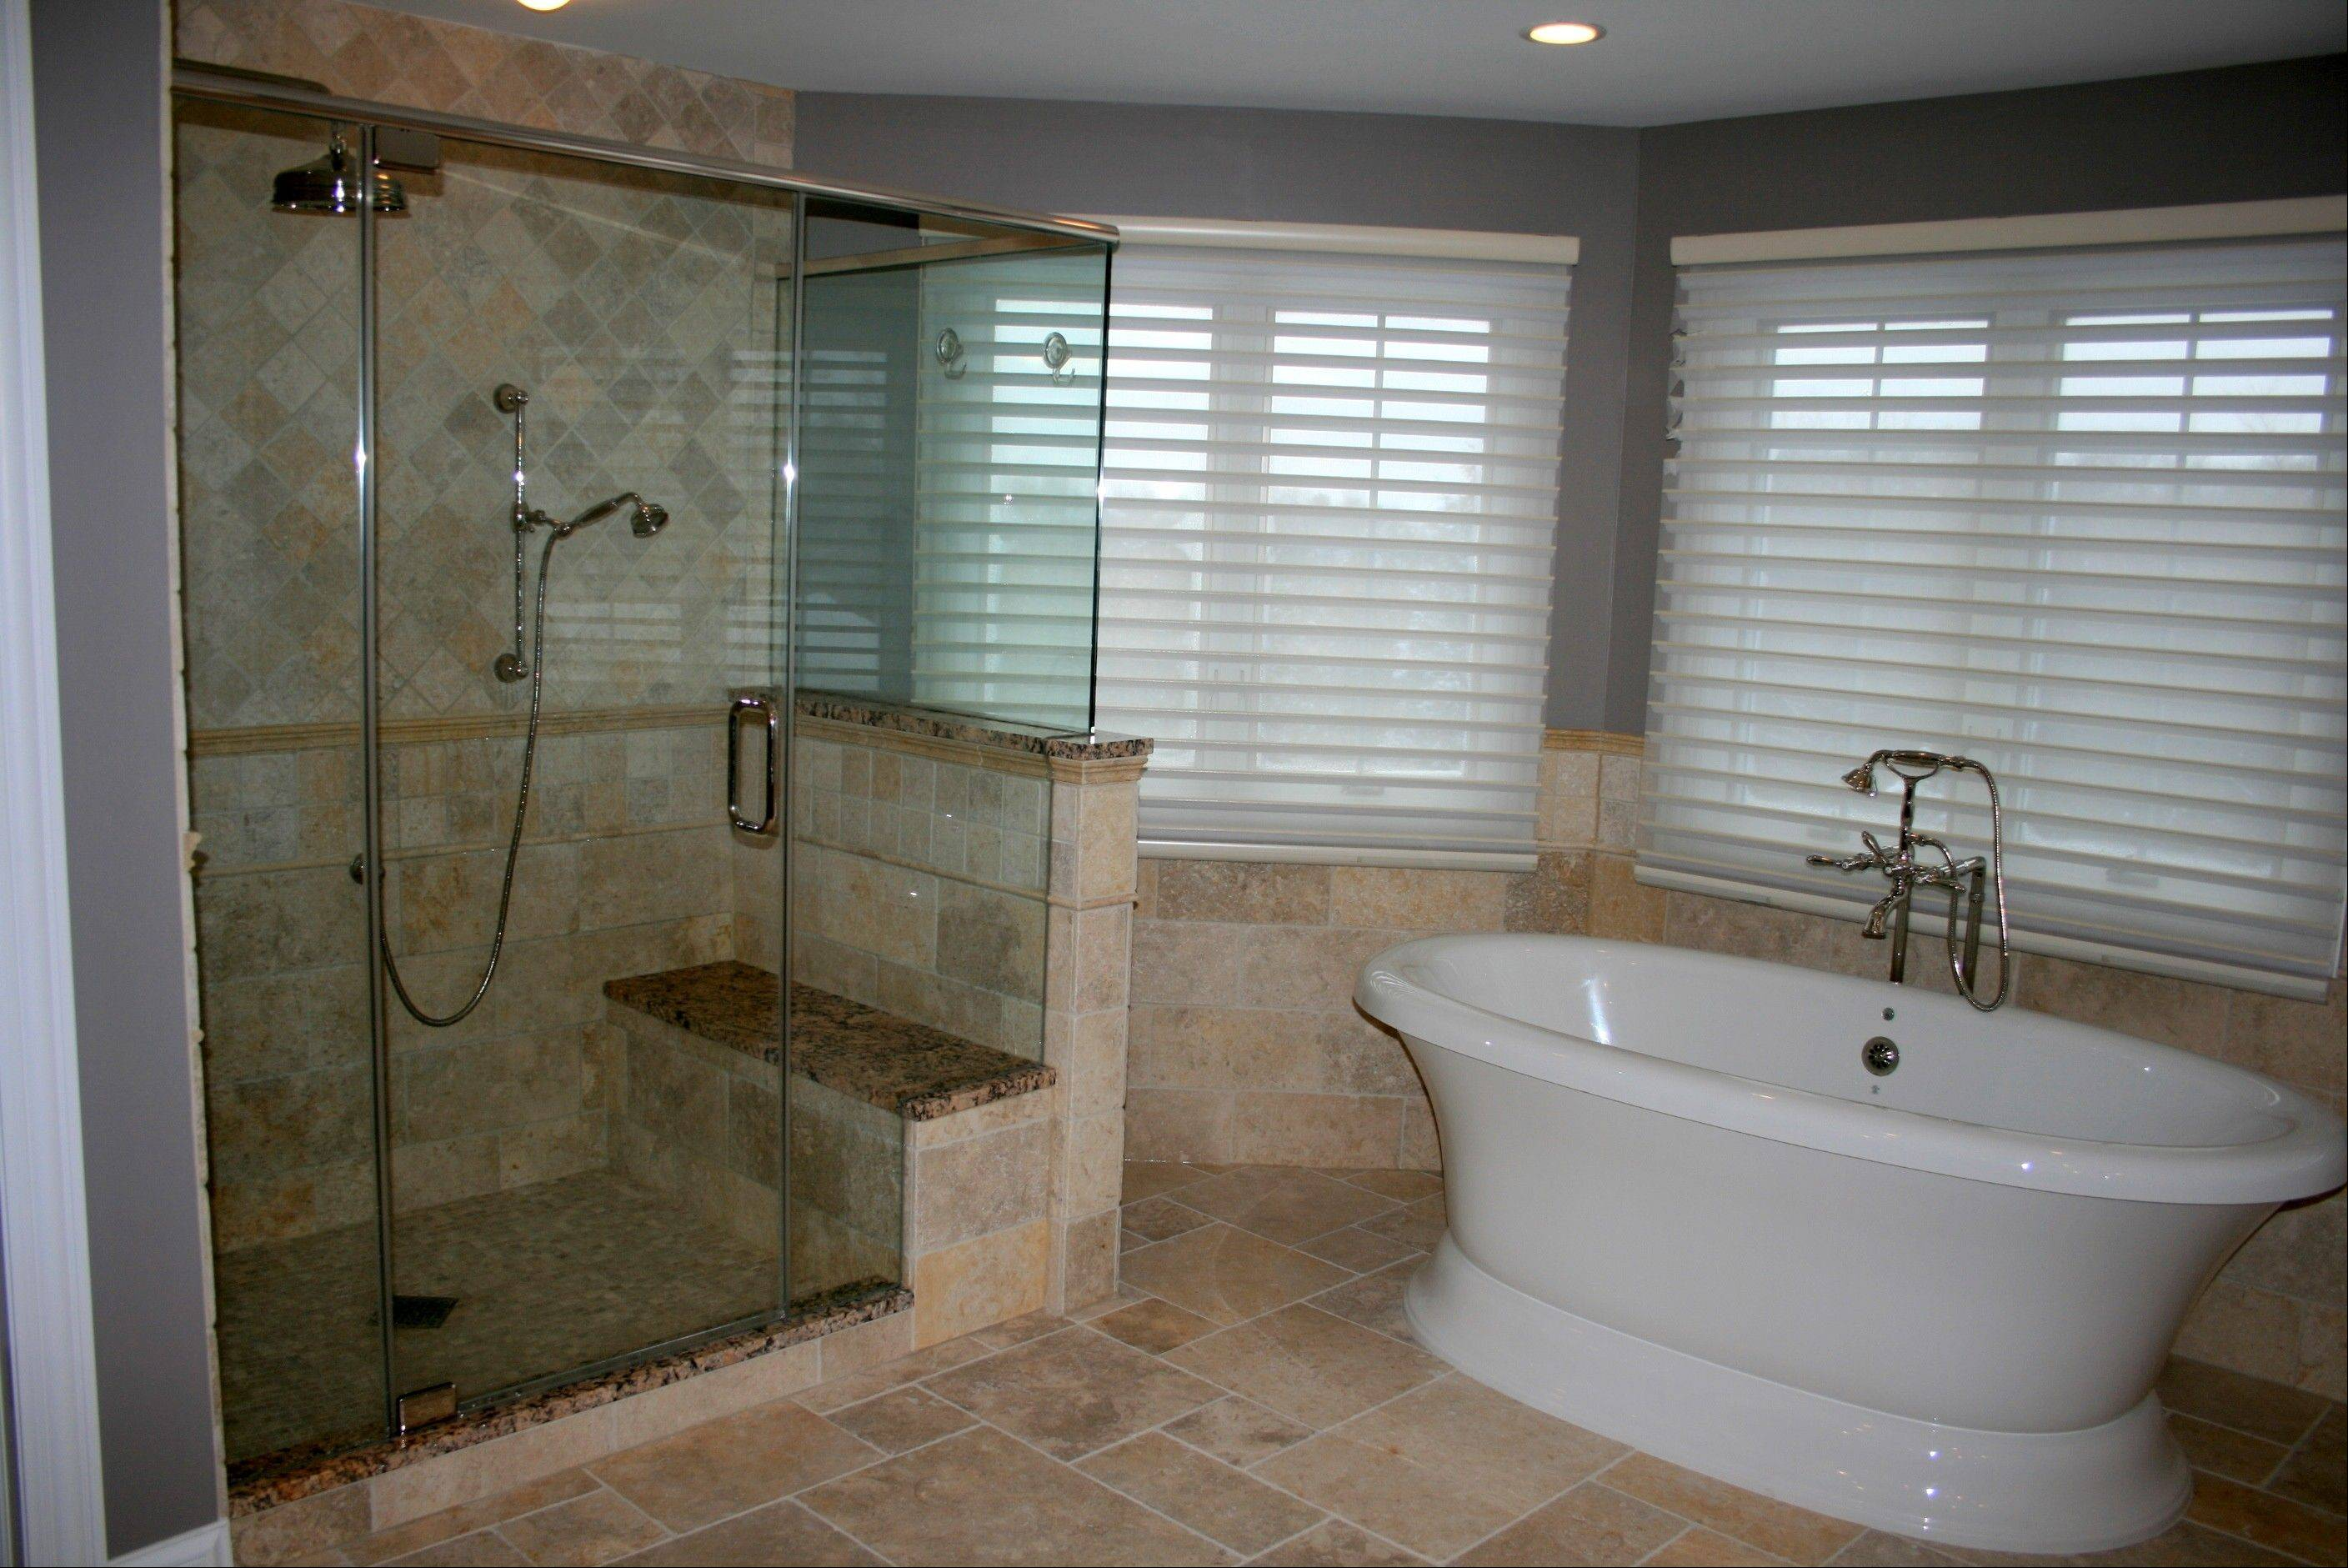 Many homeowners today prefer a stand-alone shower, but will opt for a separate tub if they have the space.